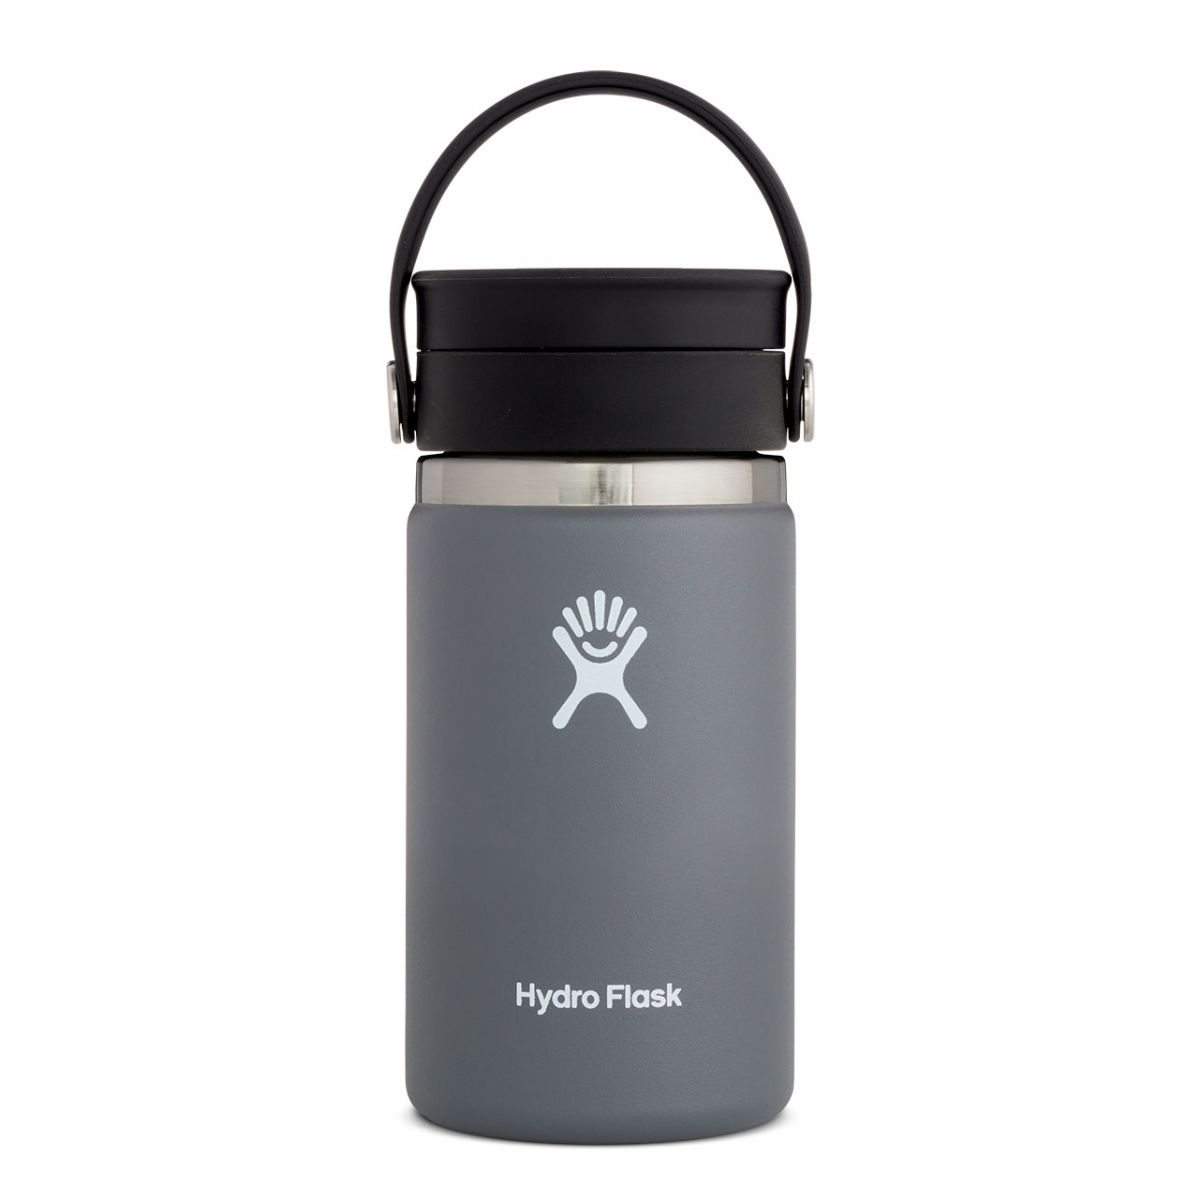 gray water bottle with black lid